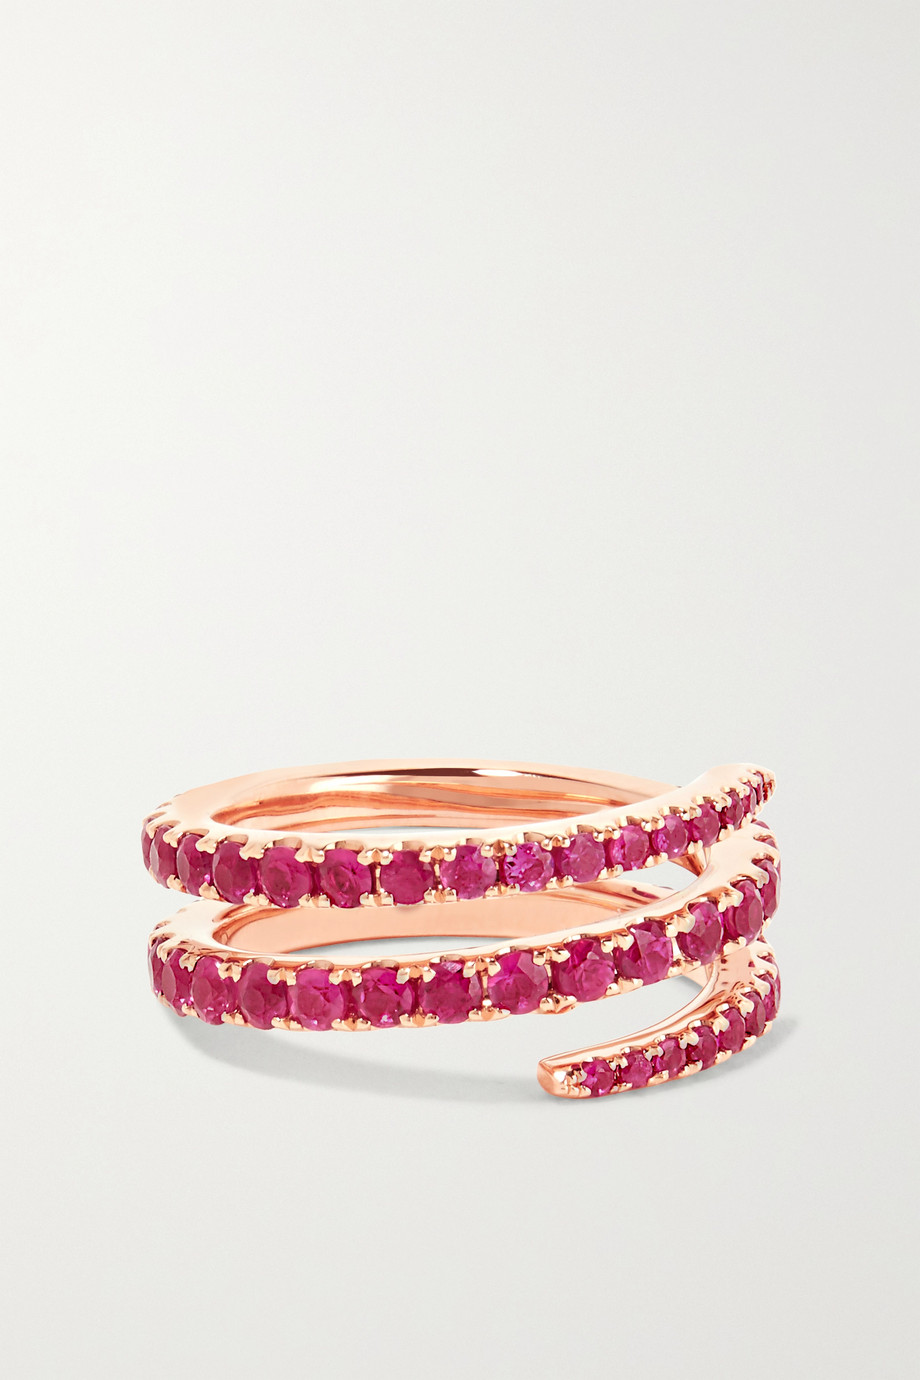 Anita Ko 18-karat rose gold ruby pinky ring